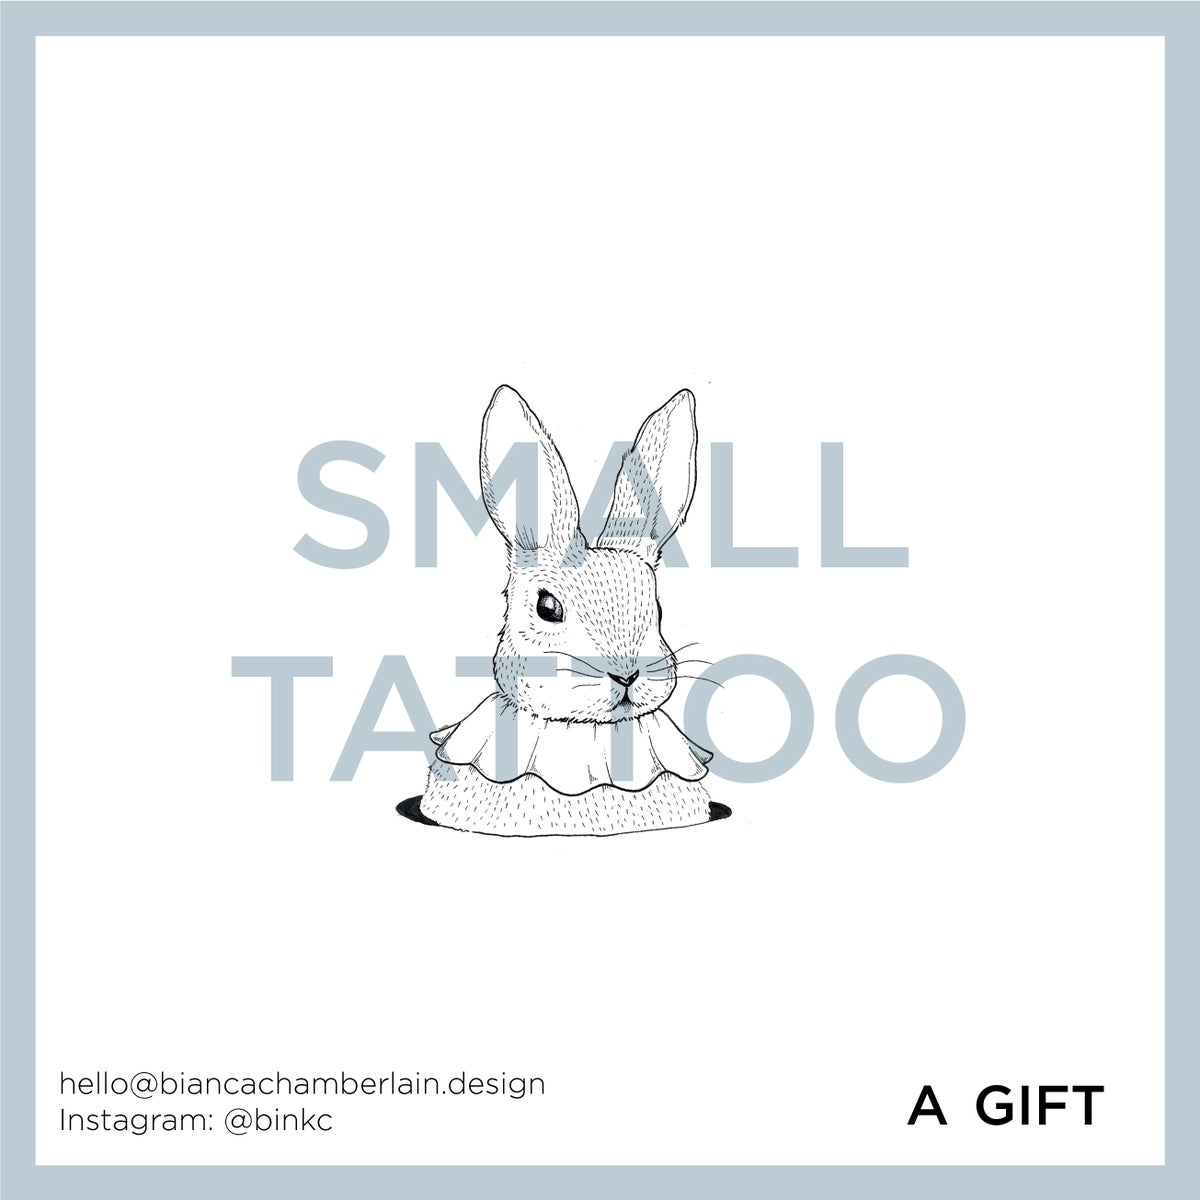 Image of Tattoo Gift Card (Small Sized)